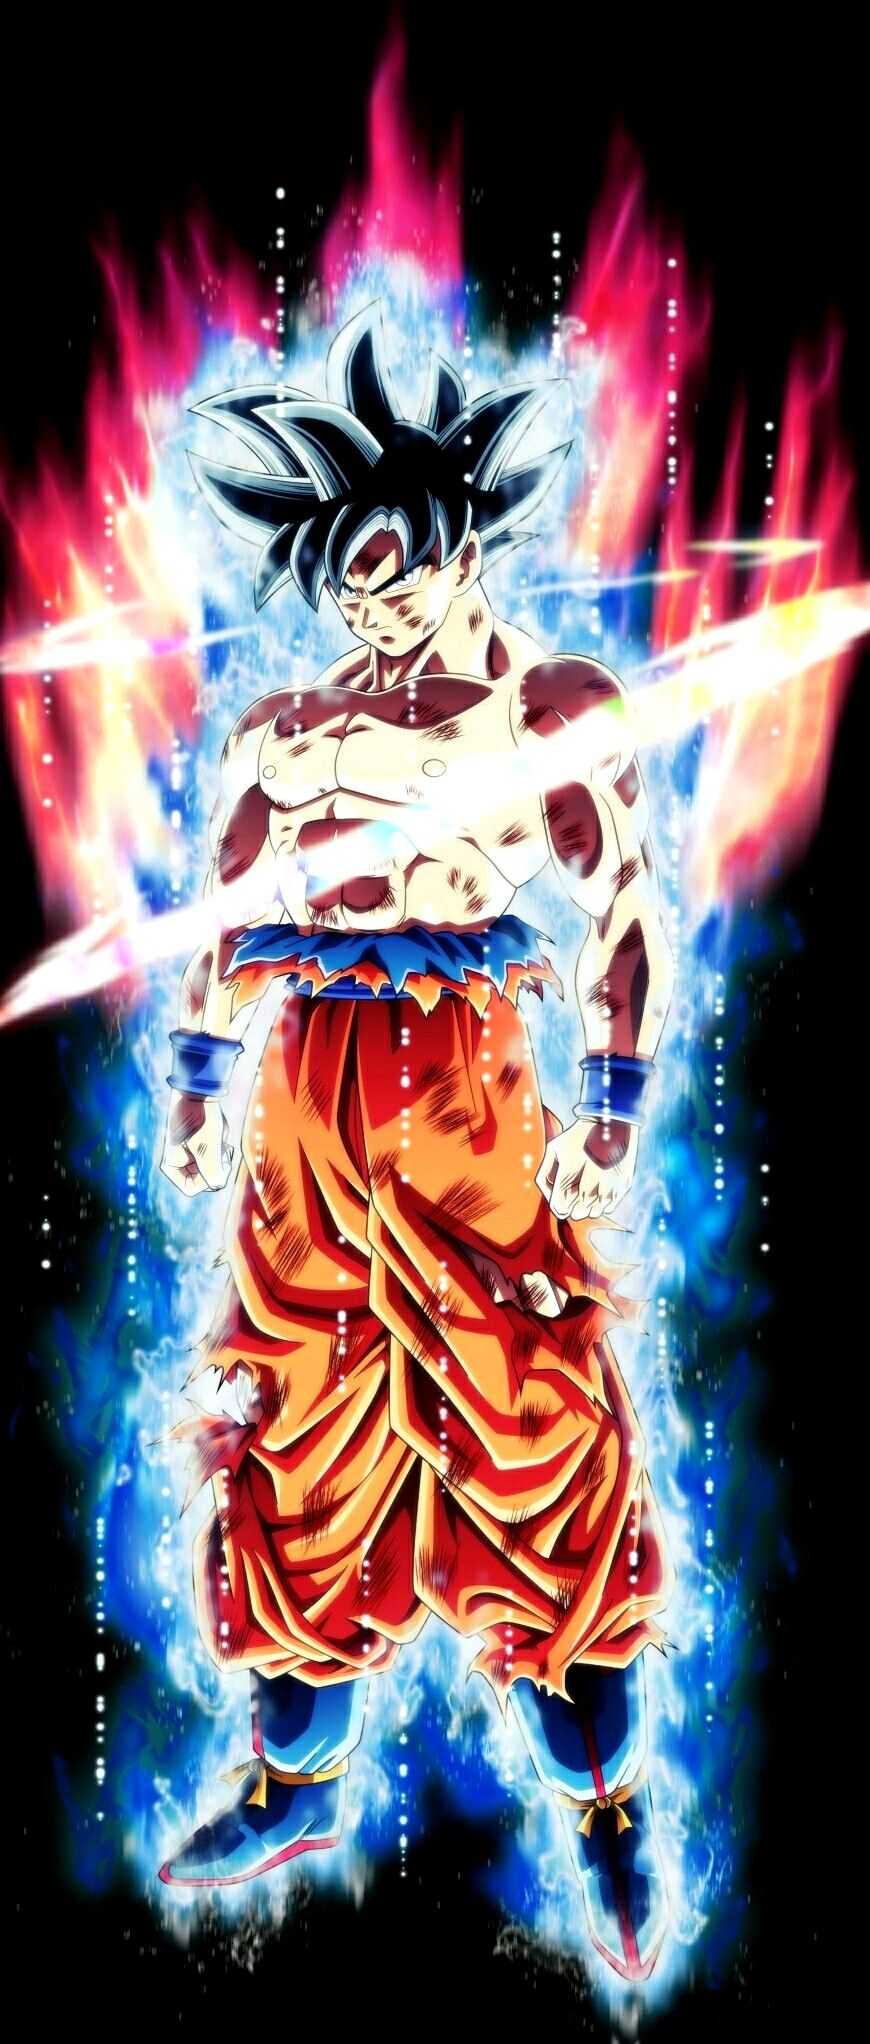 Goku Ultra Instinct Wallpaper 4k Iphone Gallery Dragon Ball Super Goku Anime Dragon Ball Super Dragon Ball Goku